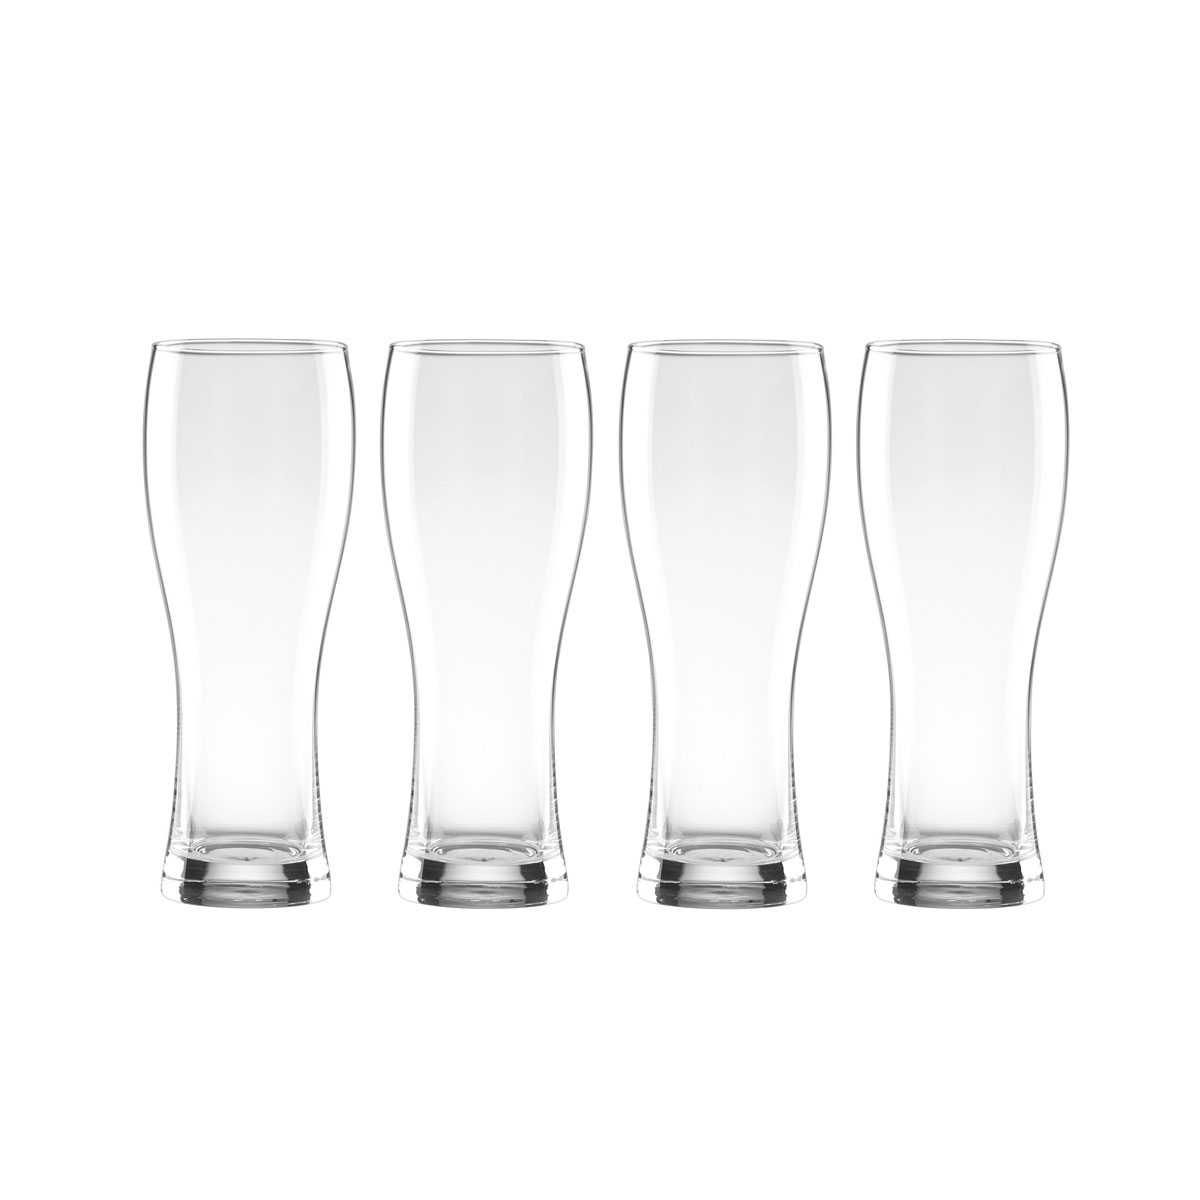 Lenox Tuscany Classics, Crystal Craft Crystal Beer Wheat Crystal Beer, Set of 4